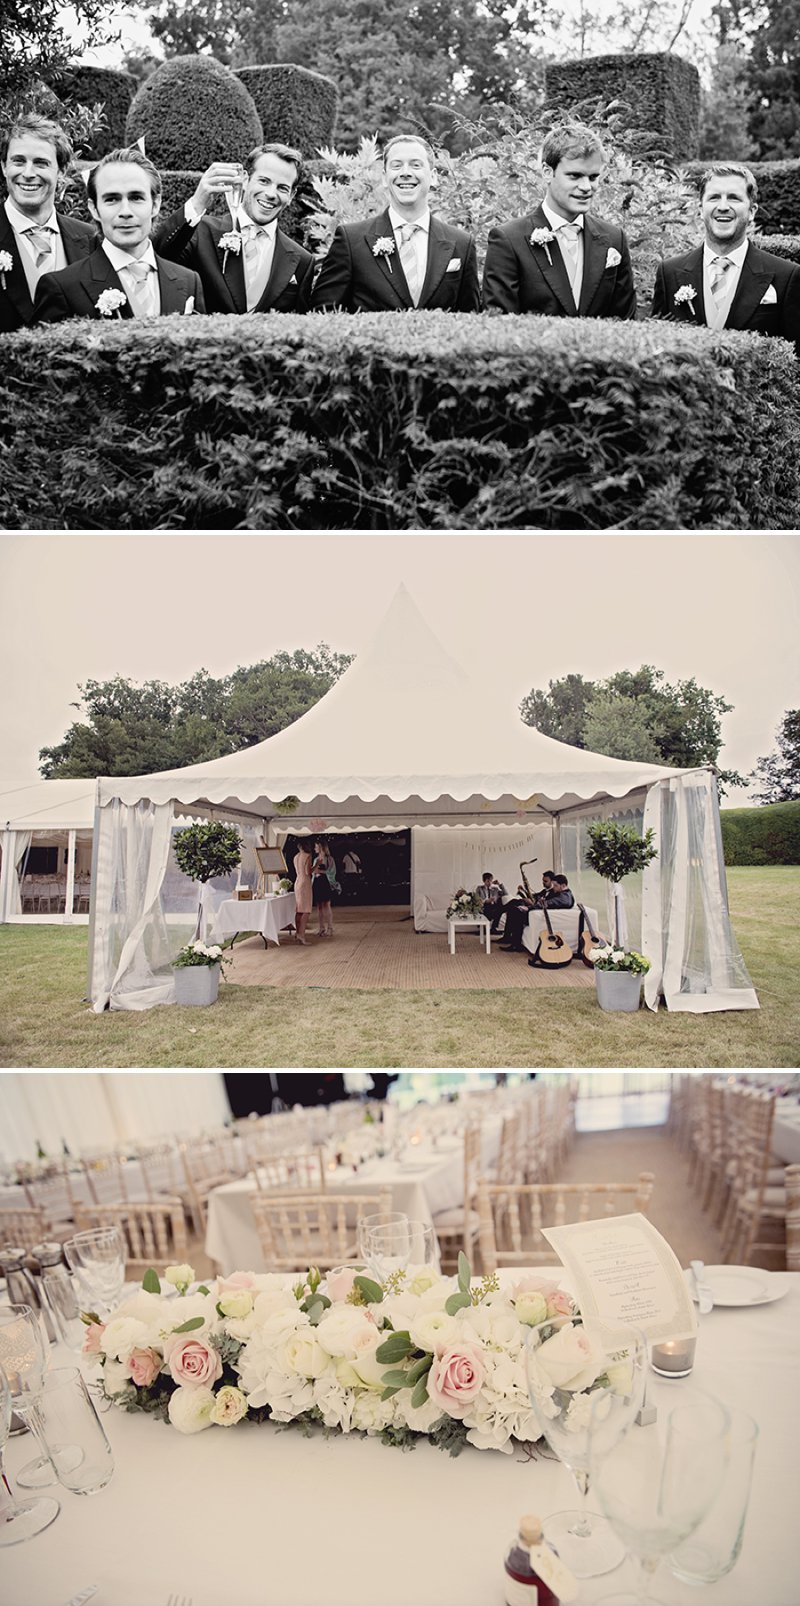 Contemporary Marquee Wedding With A Soft And Romantic Pastel Colour Scheme With Bride In Essense Of Australia Gown And Groom In Tails With Anges De Sucres Macarons And Images By Razia N Jukes Photography 8